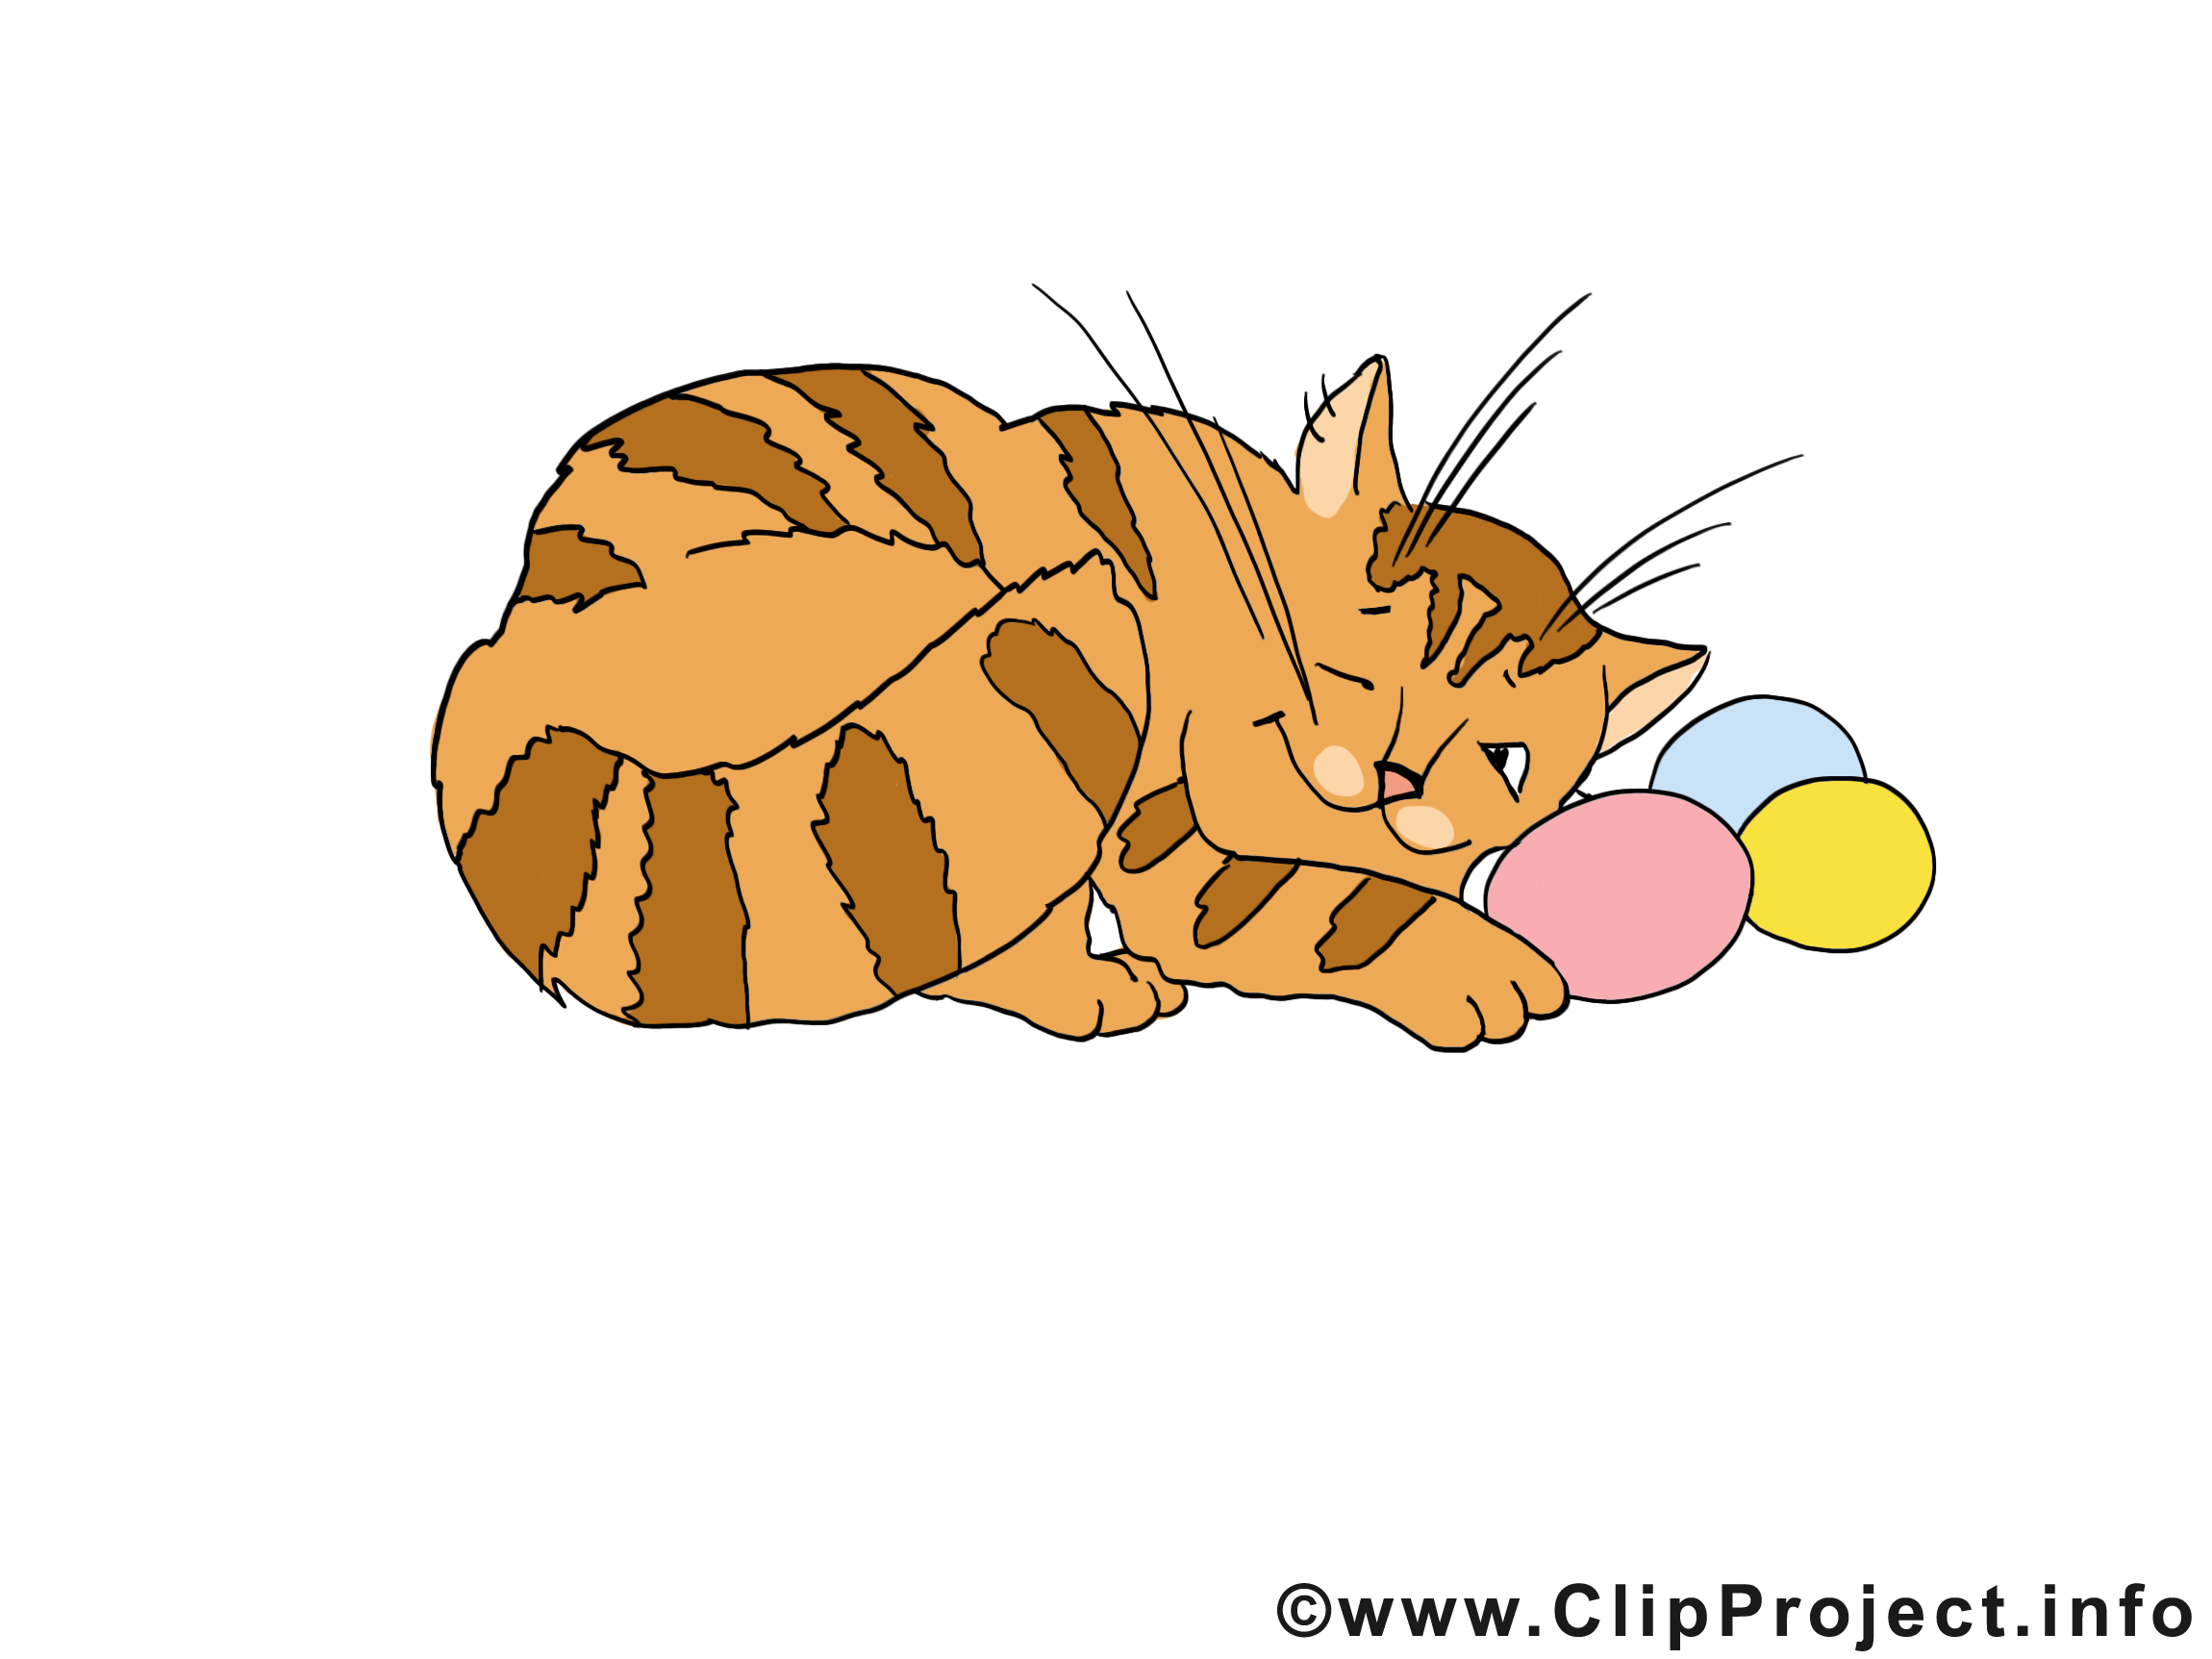 Chat clipart gratuit clipart freeuse download Chats - Clipart images télécharger gratuit clipart freeuse download